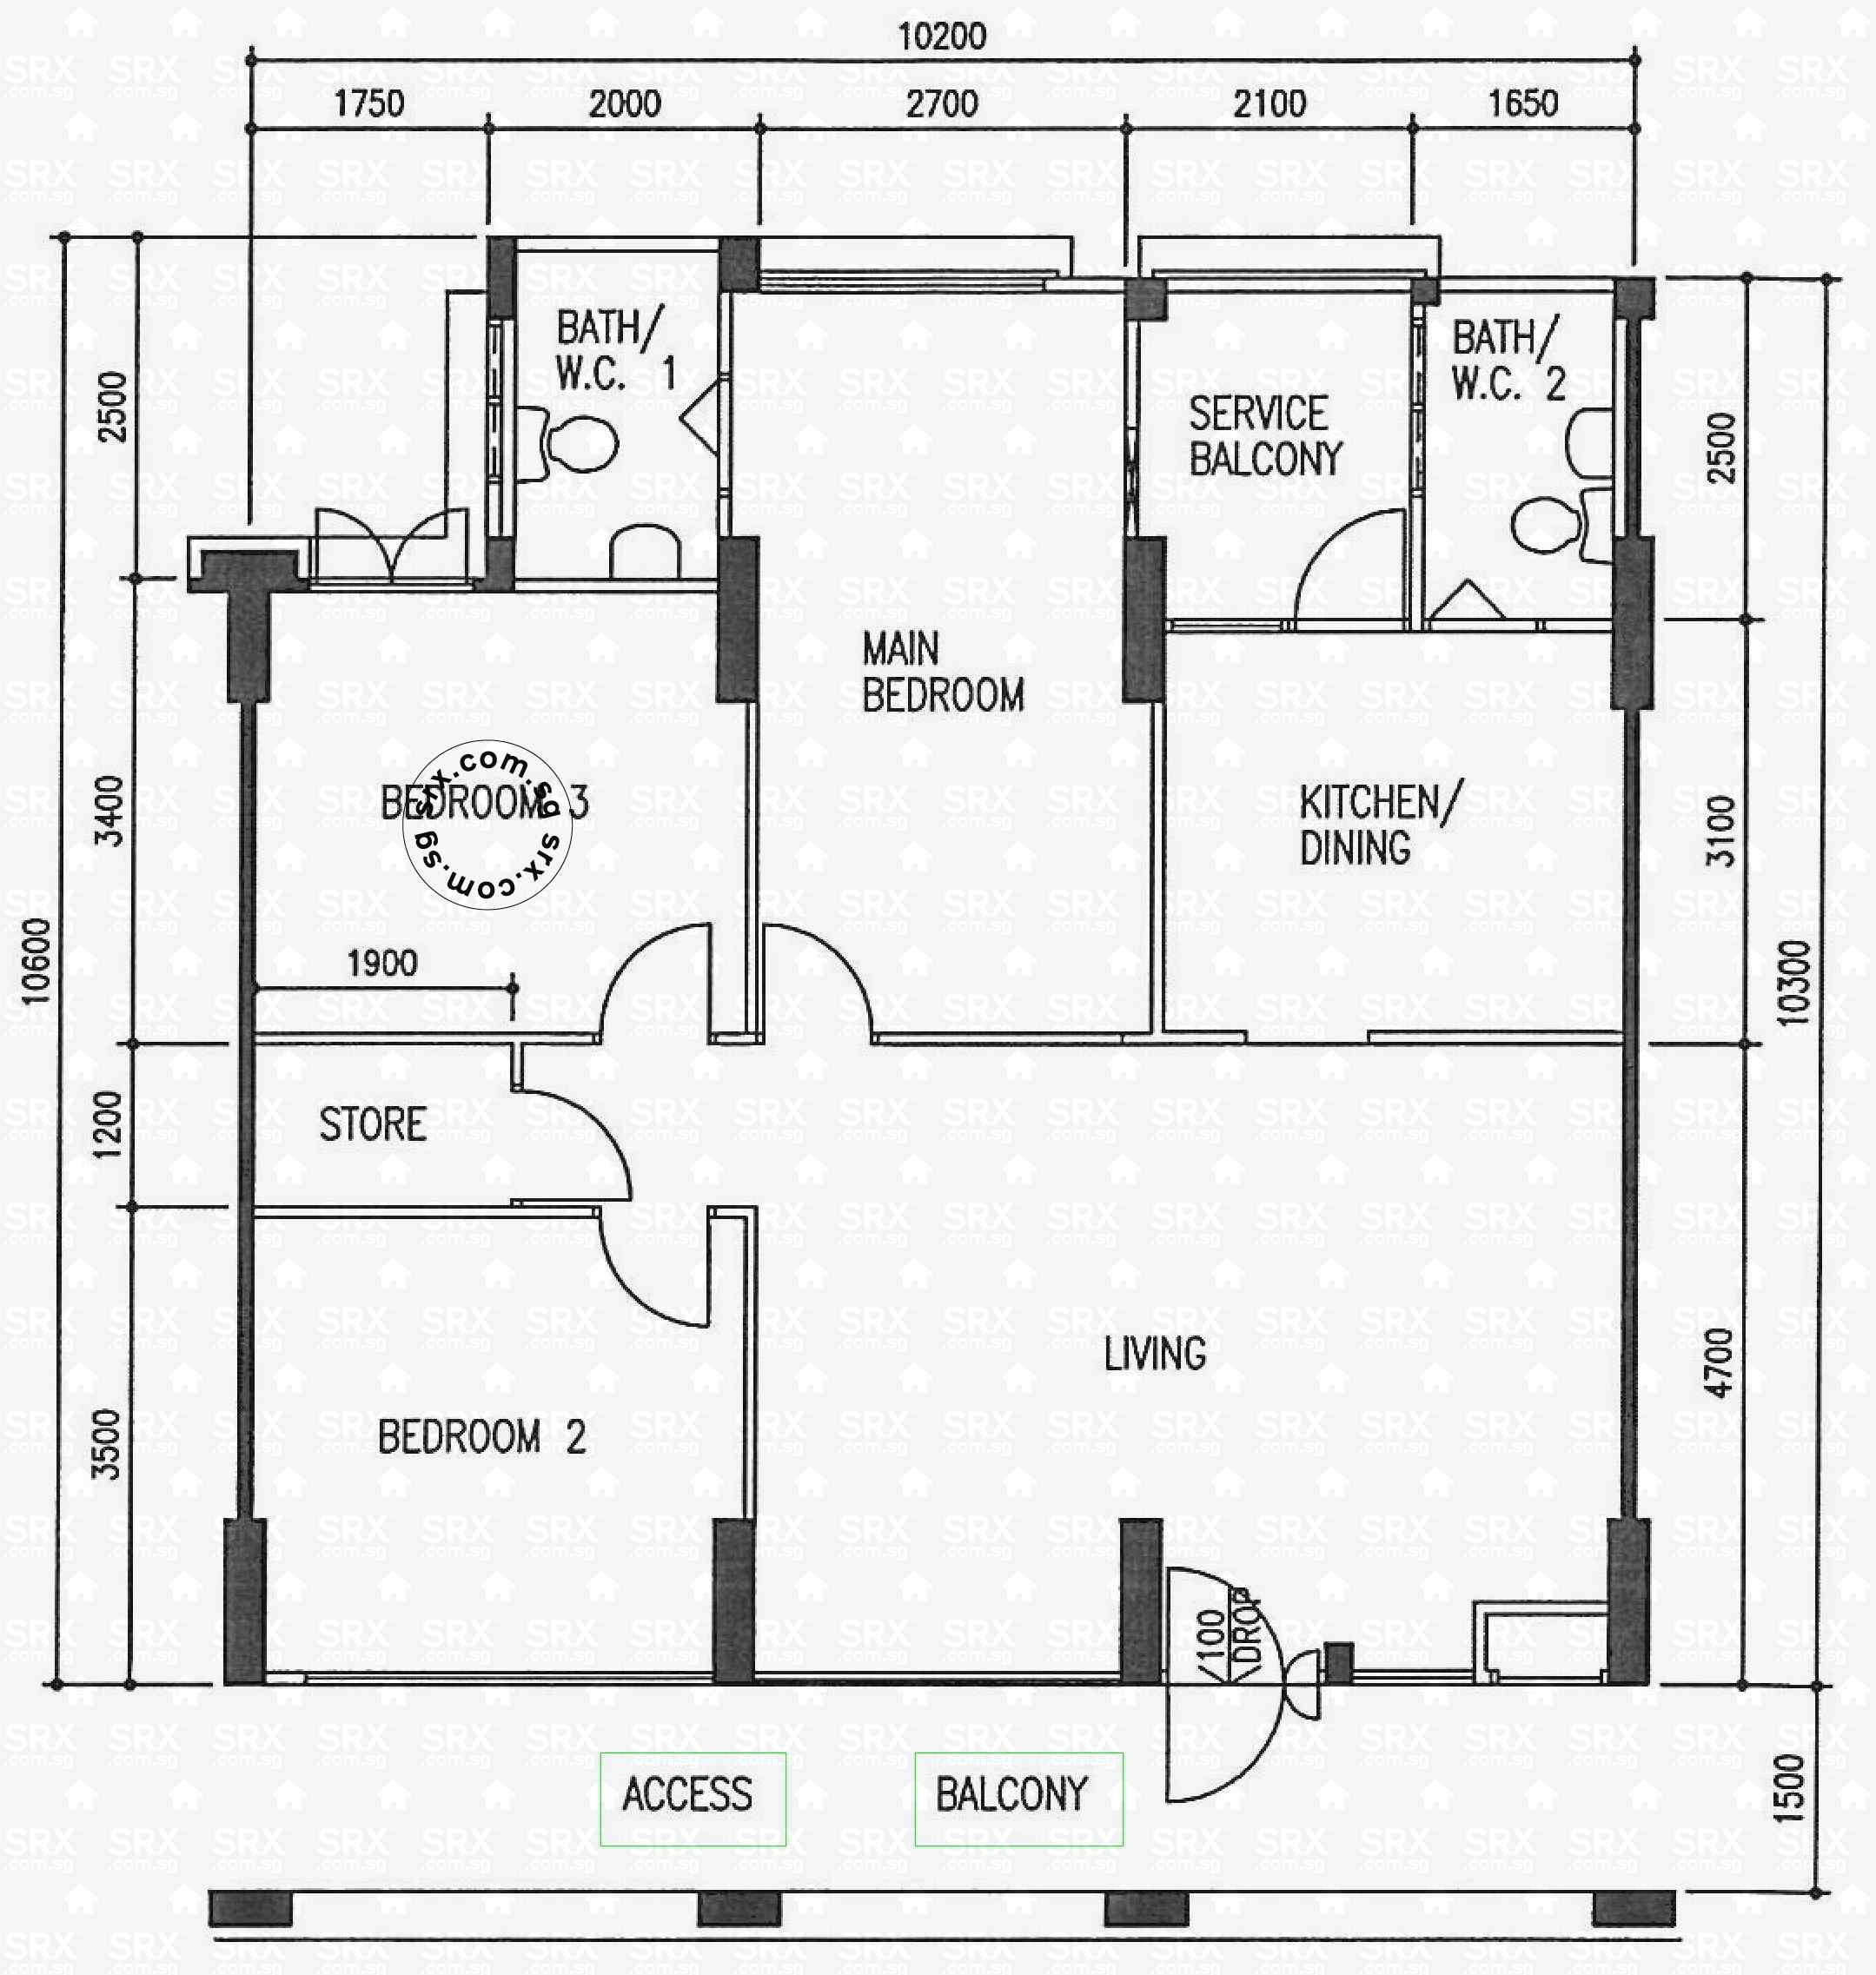 Floor plans for 573 hougang street 51 s 530573 hdb for Plan 51